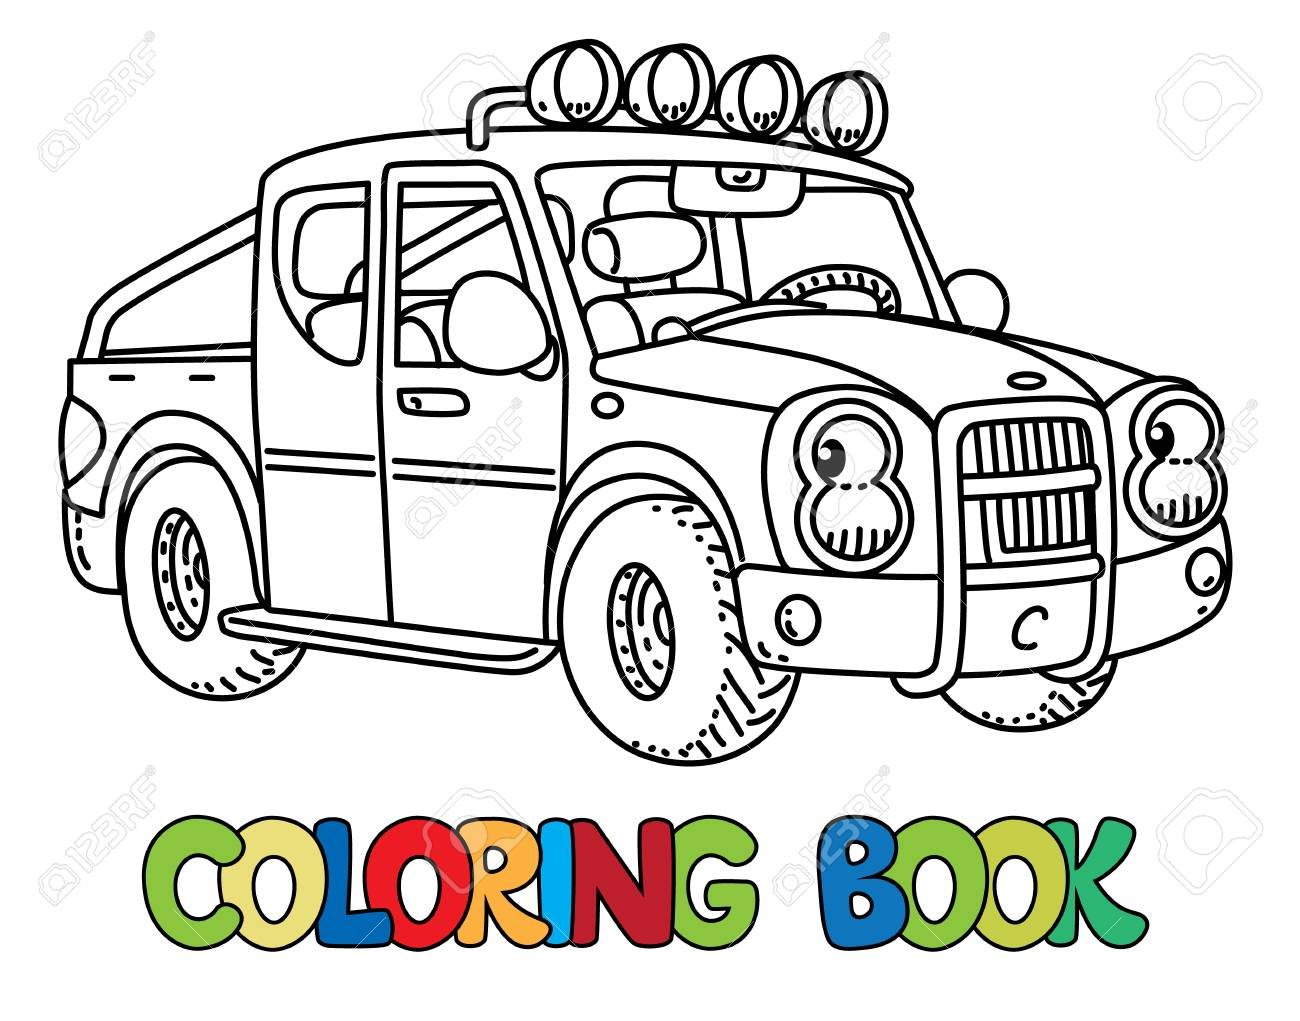 Pickup Truck Coloring Book For Kids. Small Funny Vector Cute ...